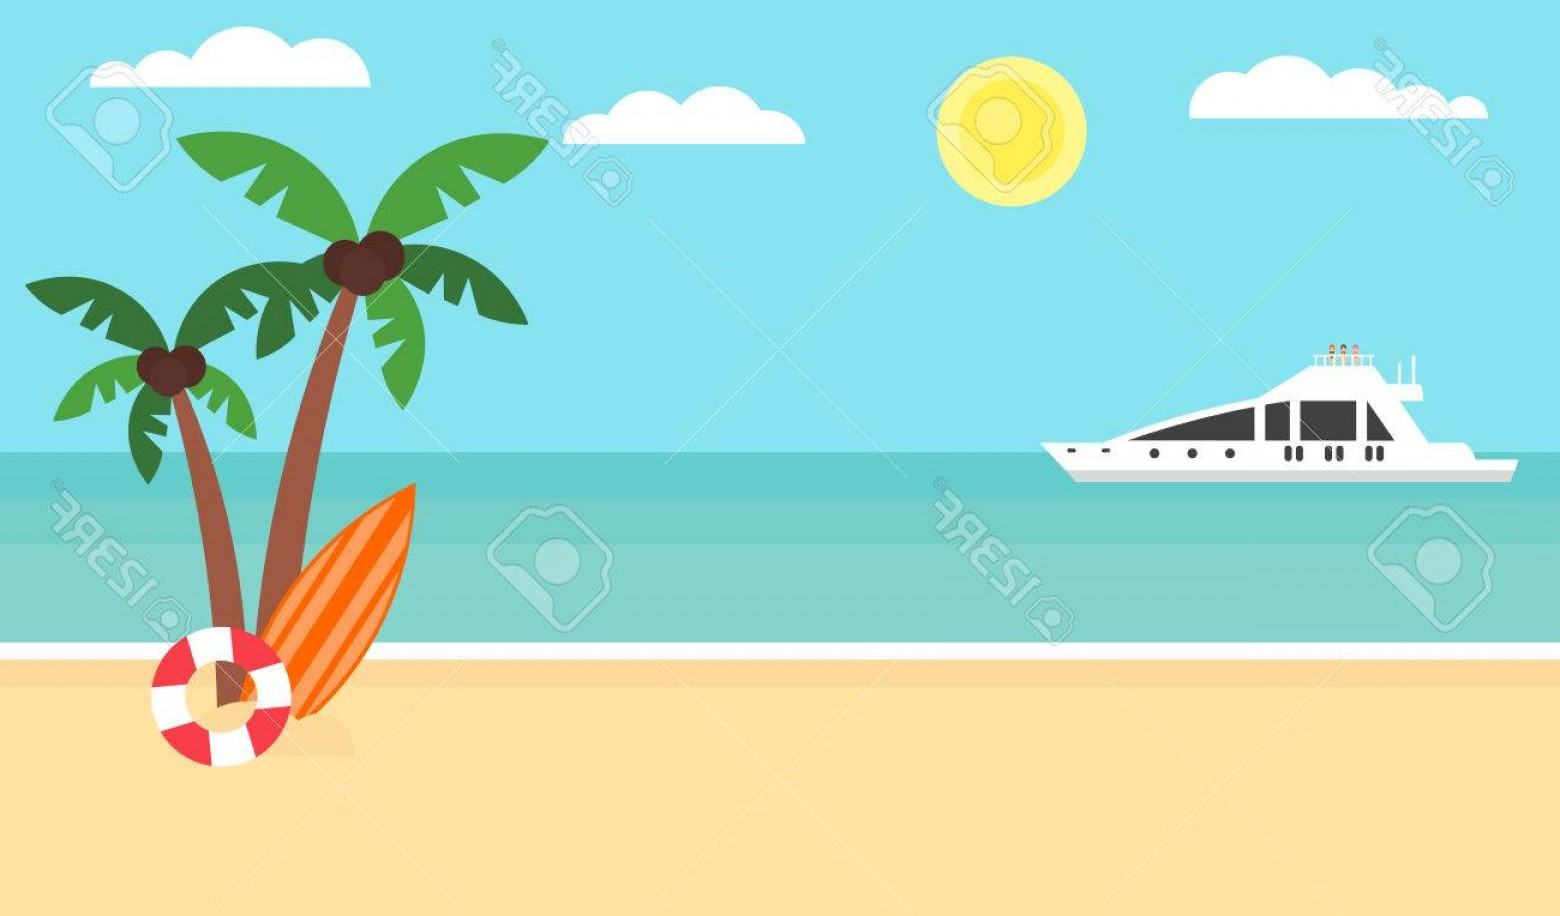 Flat Vector Background Sunset: Photostock Vector Summer Background Sunset Beach Sea Yacht And A Palm Tree Modern Flat Design